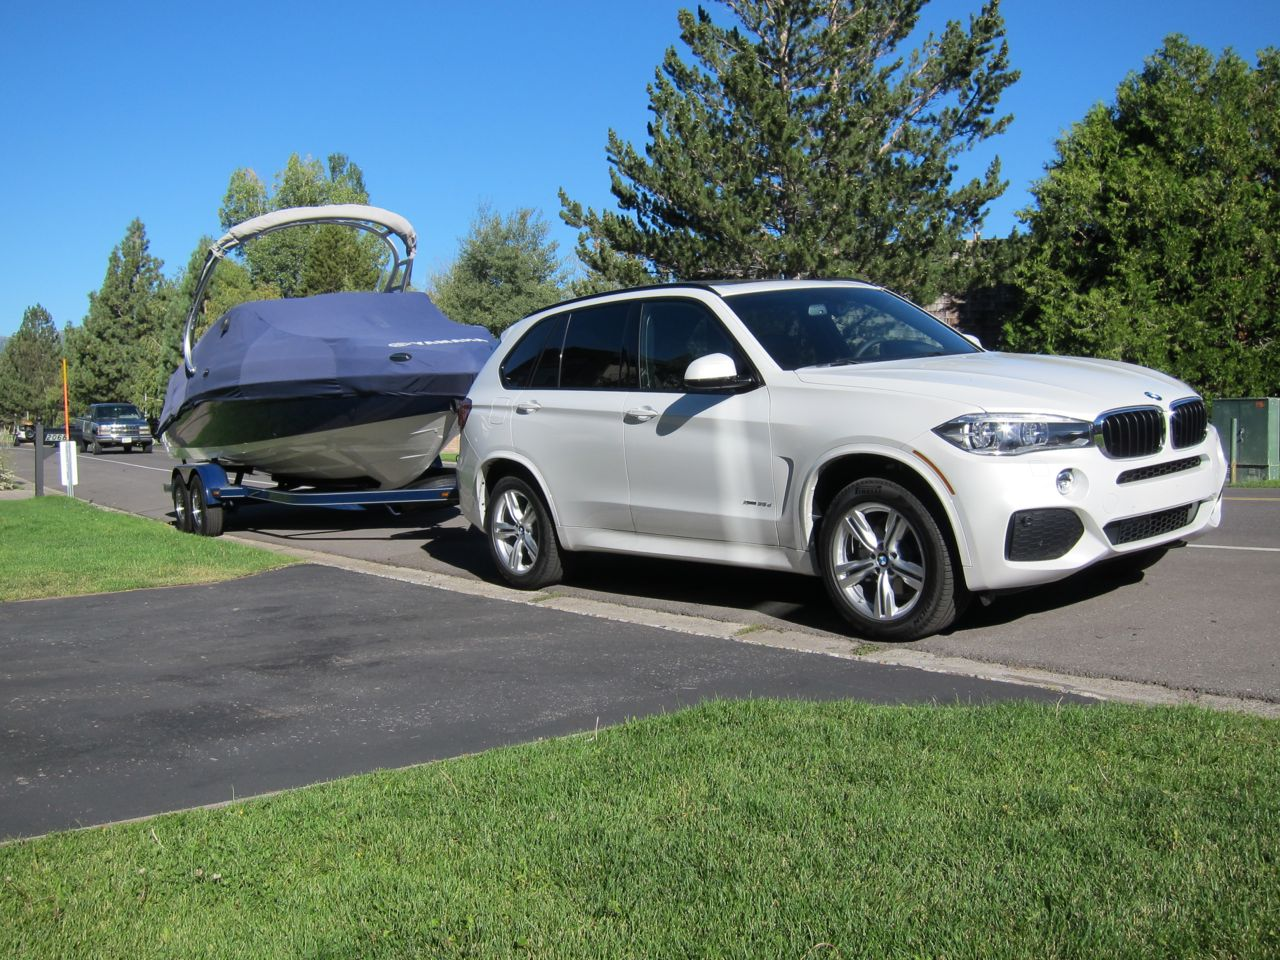 Bmw X5 Towing >> 35d Towing Impressions